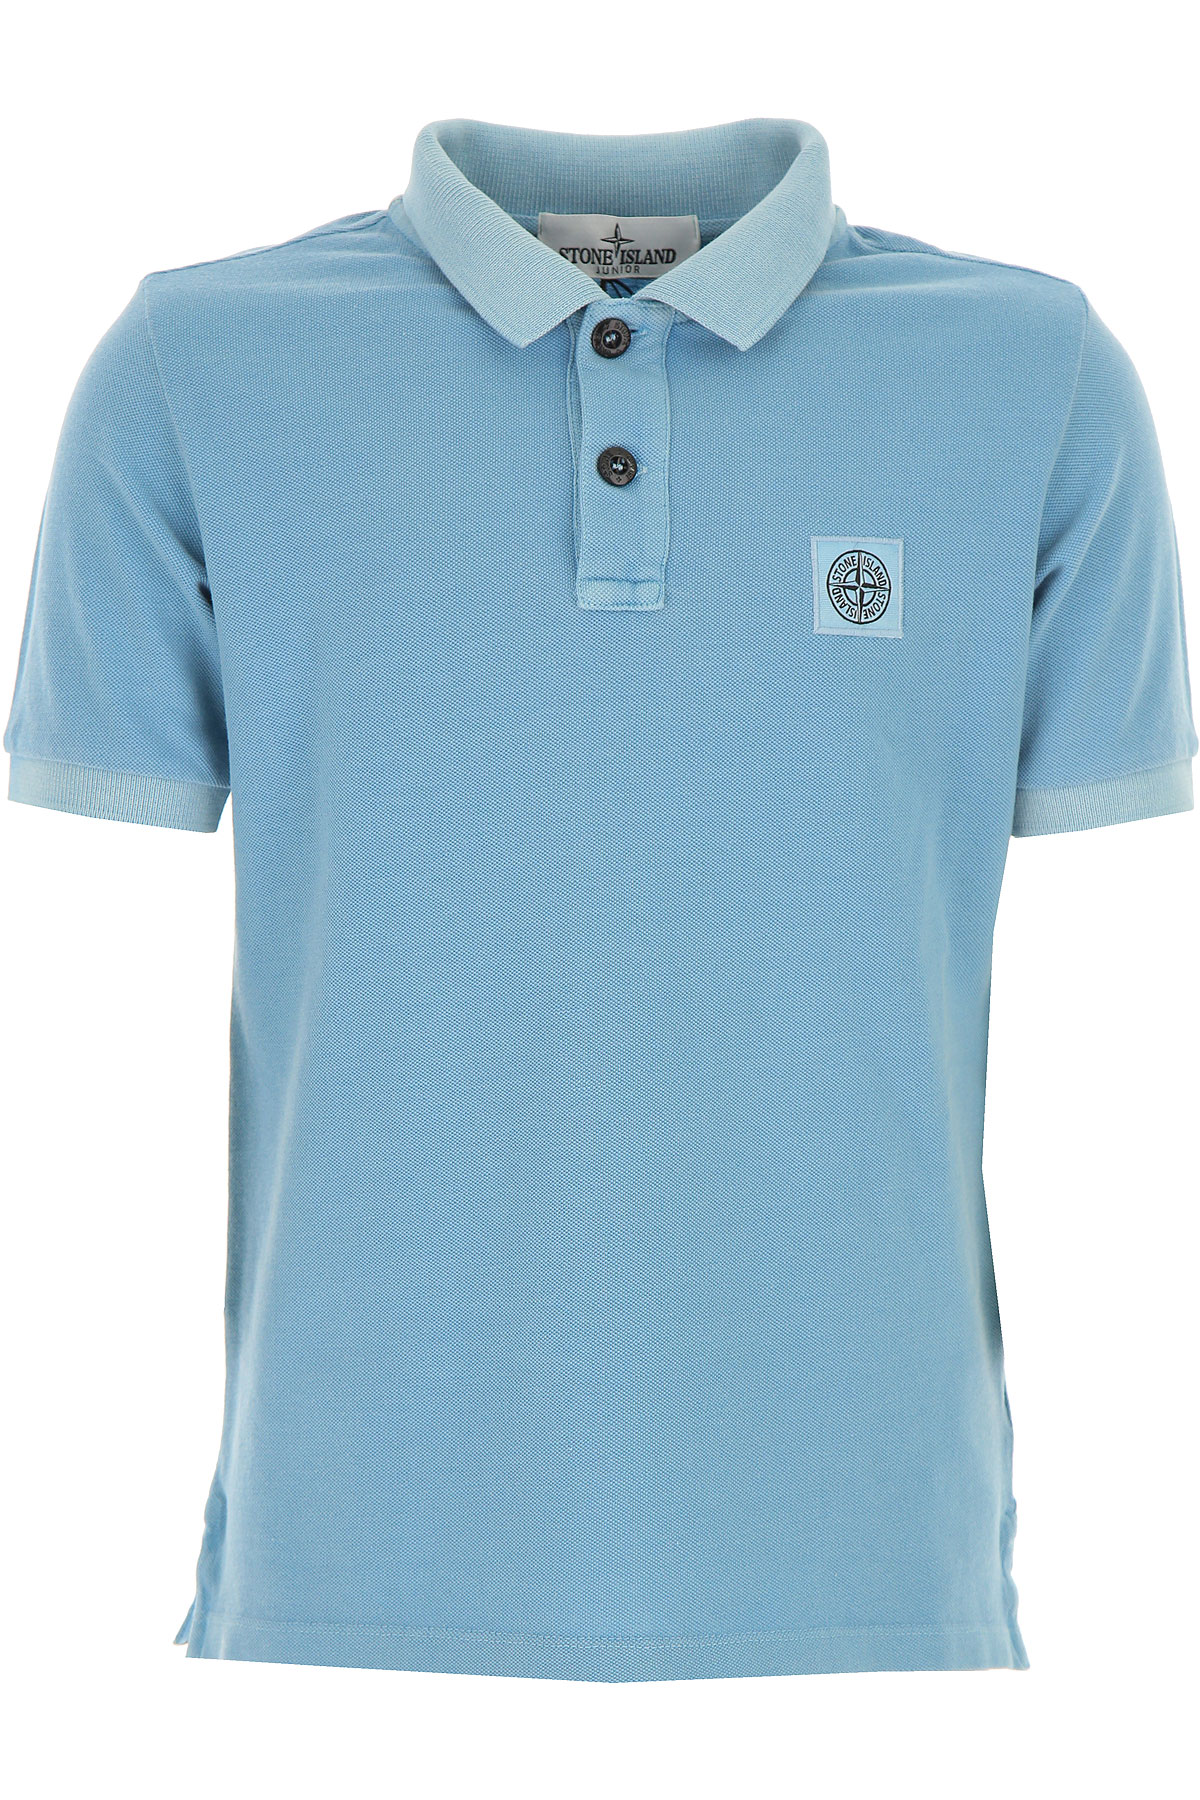 Stone Island Kids Polo Shirt for Boys On Sale in Outlet, Skyblue, Cotton, 2019, 2Y 3Y